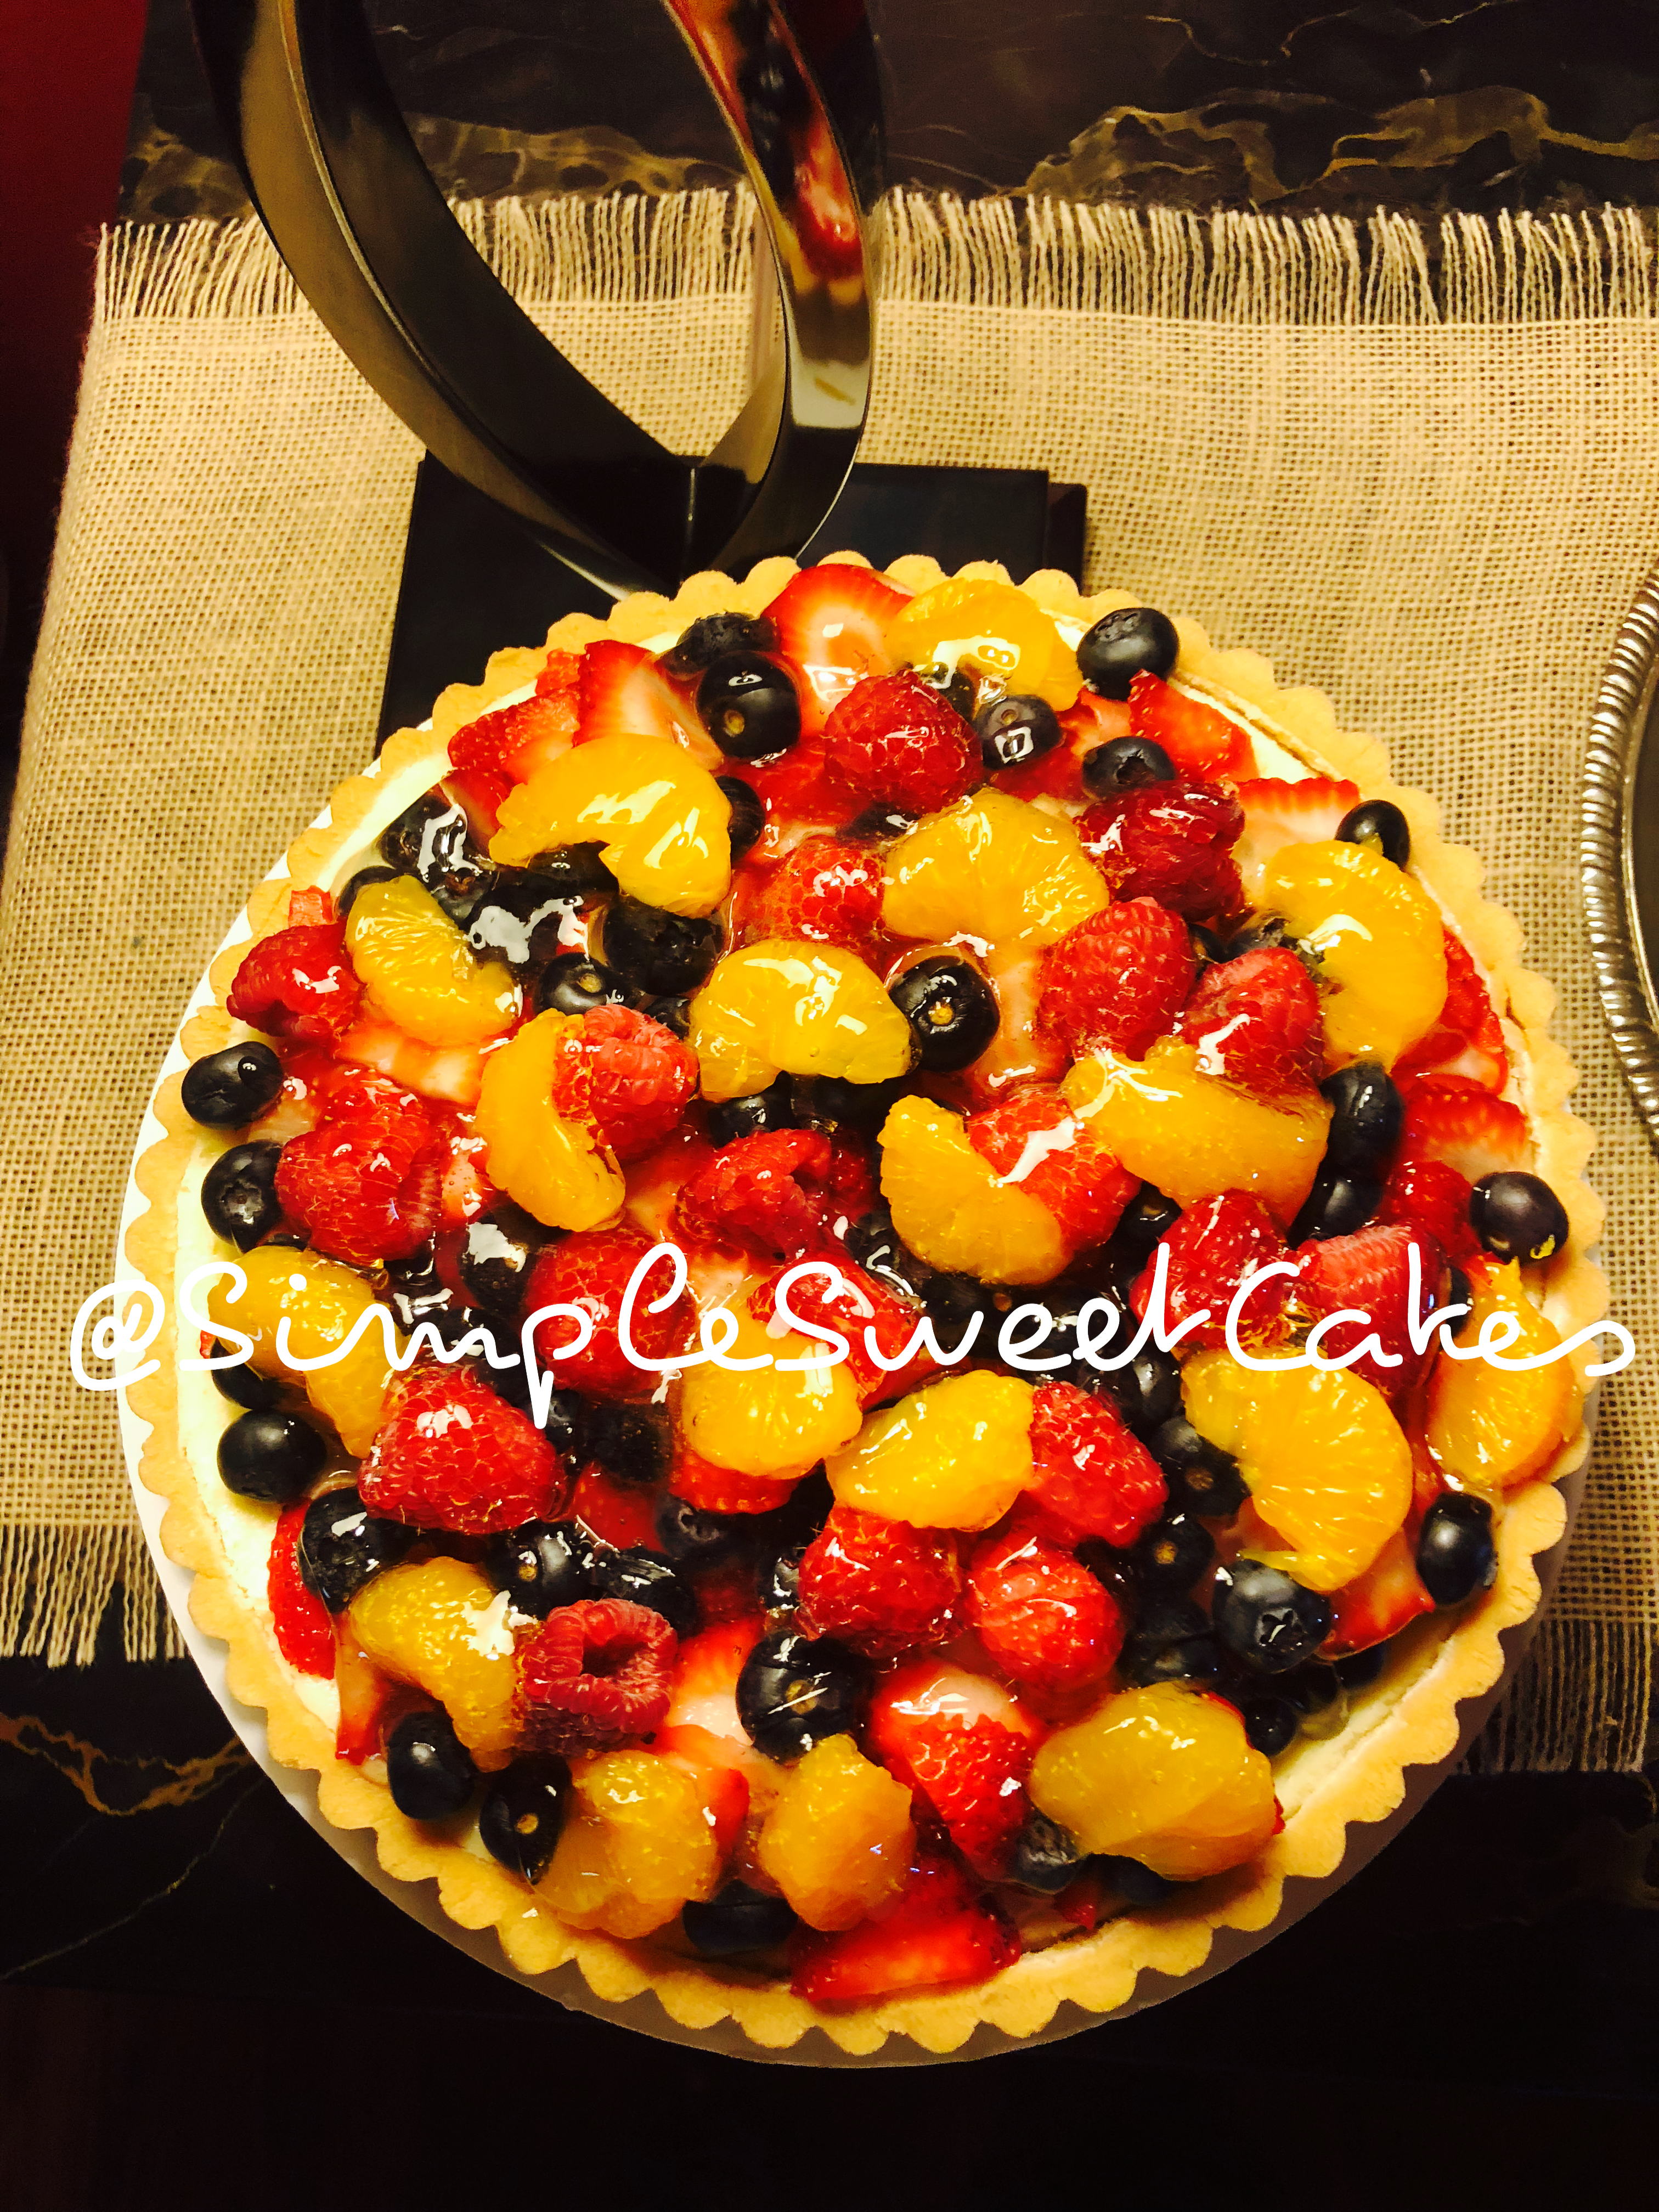 New York Style Cheesecake Tart